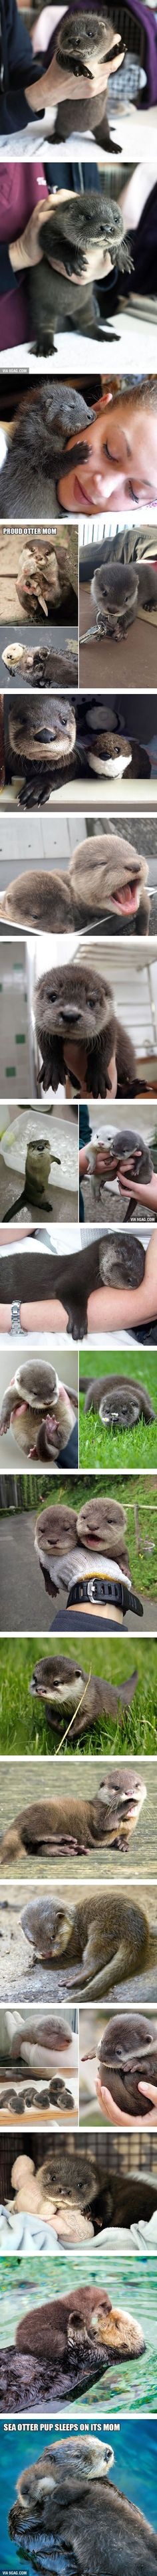 Cutest baby otters!!!